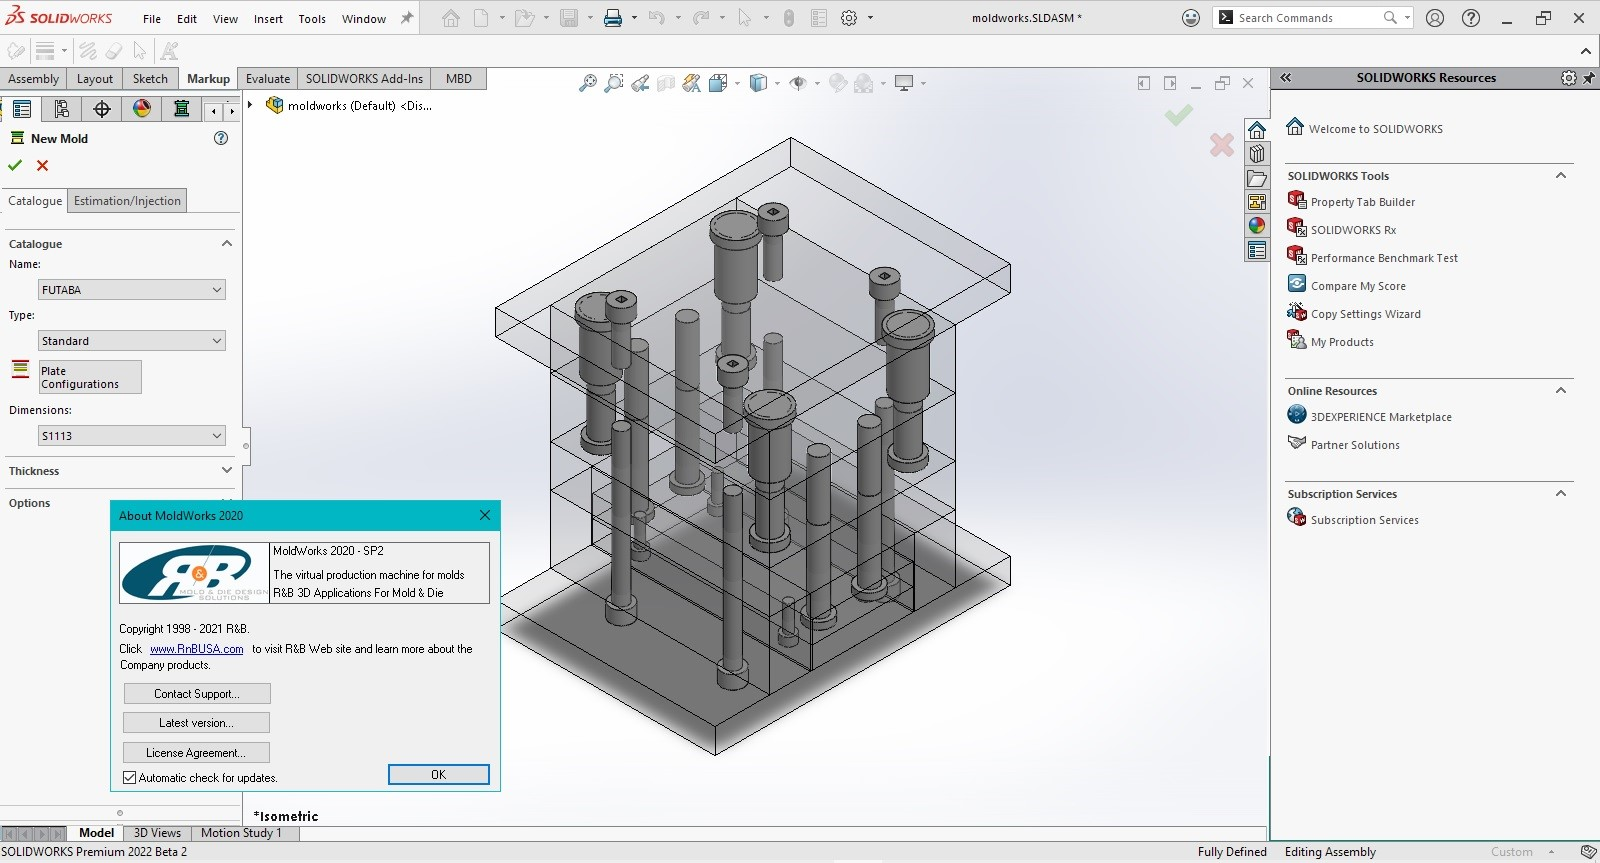 Working with R&B MoldWorks 2020 SP2 for SolidWorks 2015-2022 Win64 full